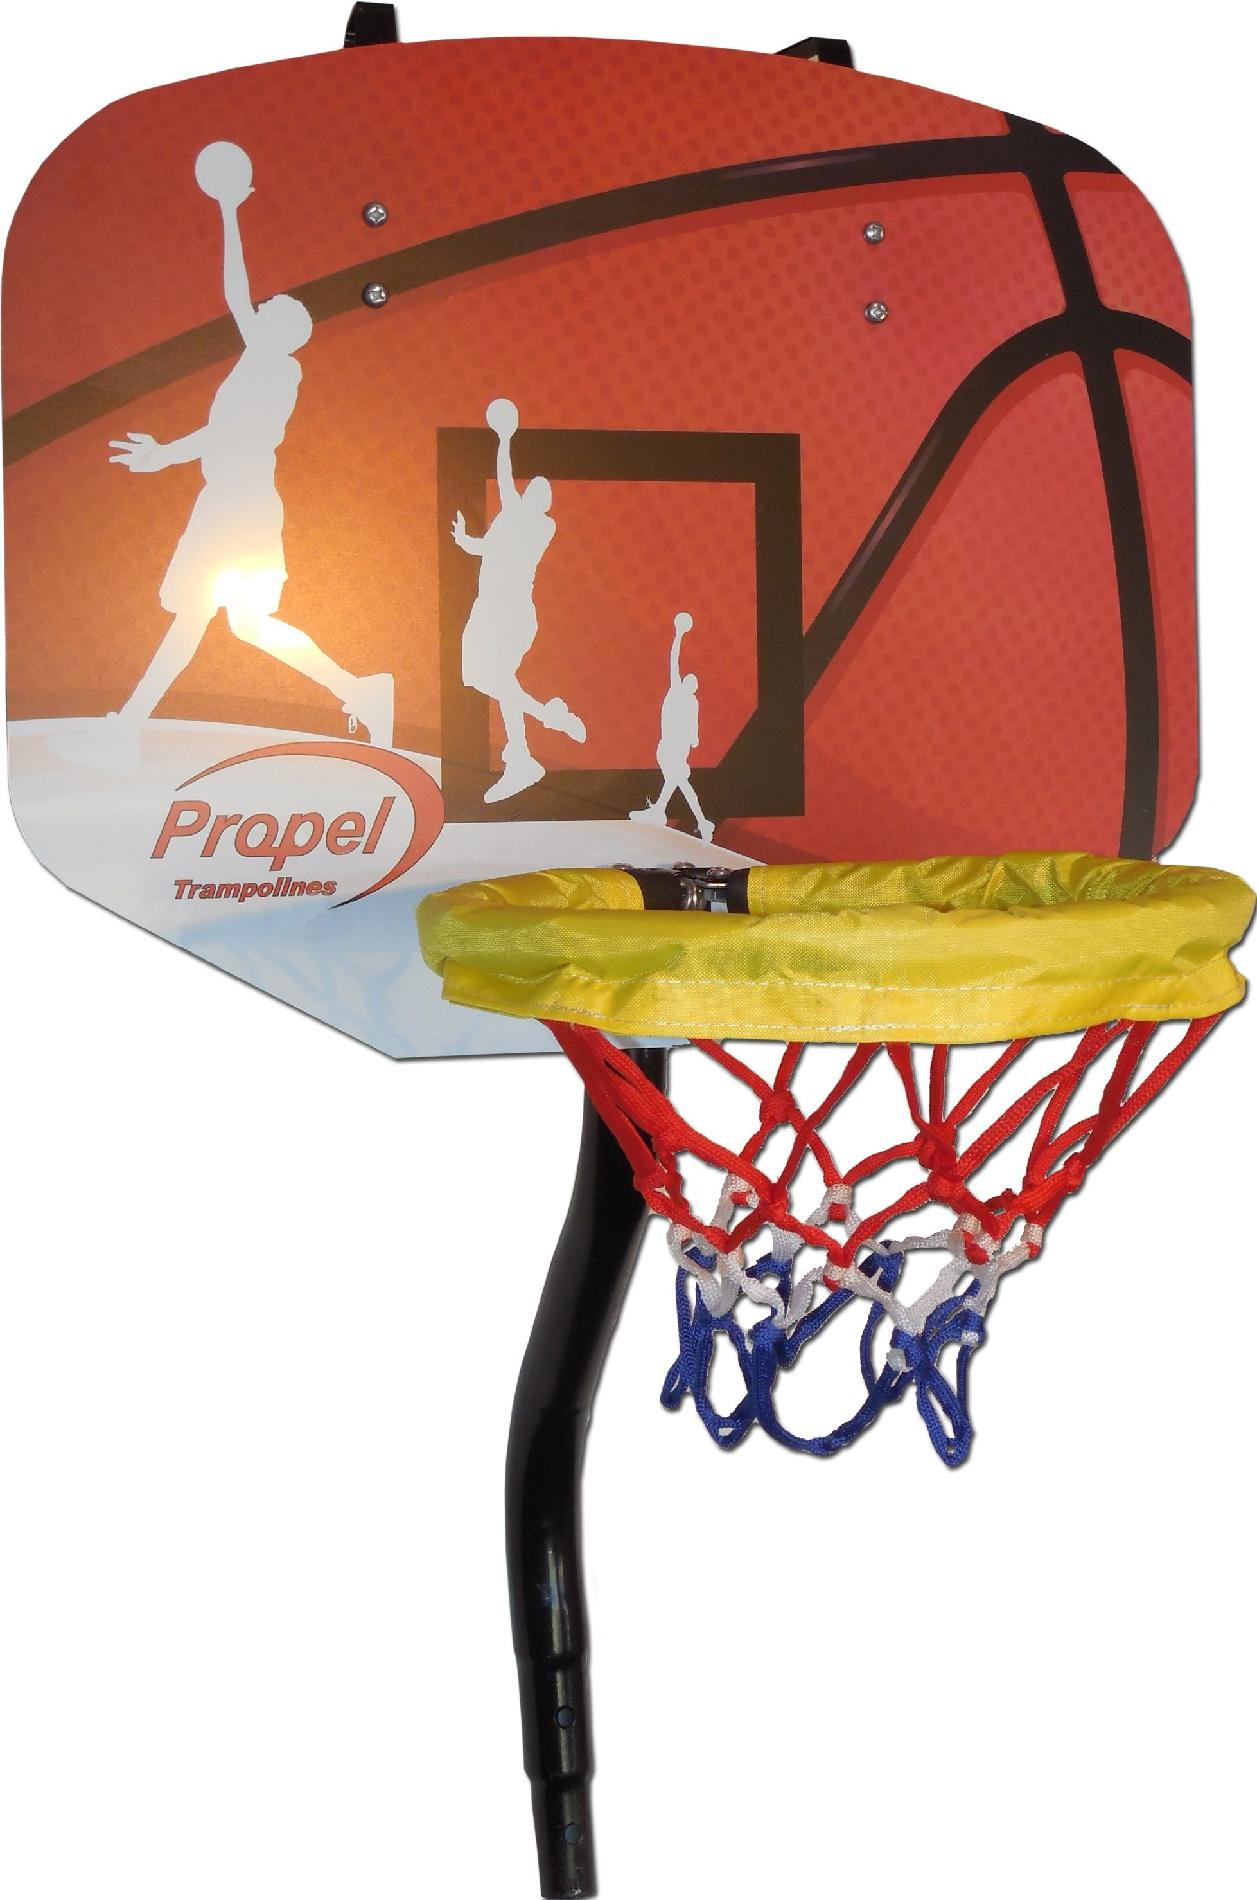 Bravo 12 ft trampoline with enclosure  plus free basketball system w/ mail in rebate